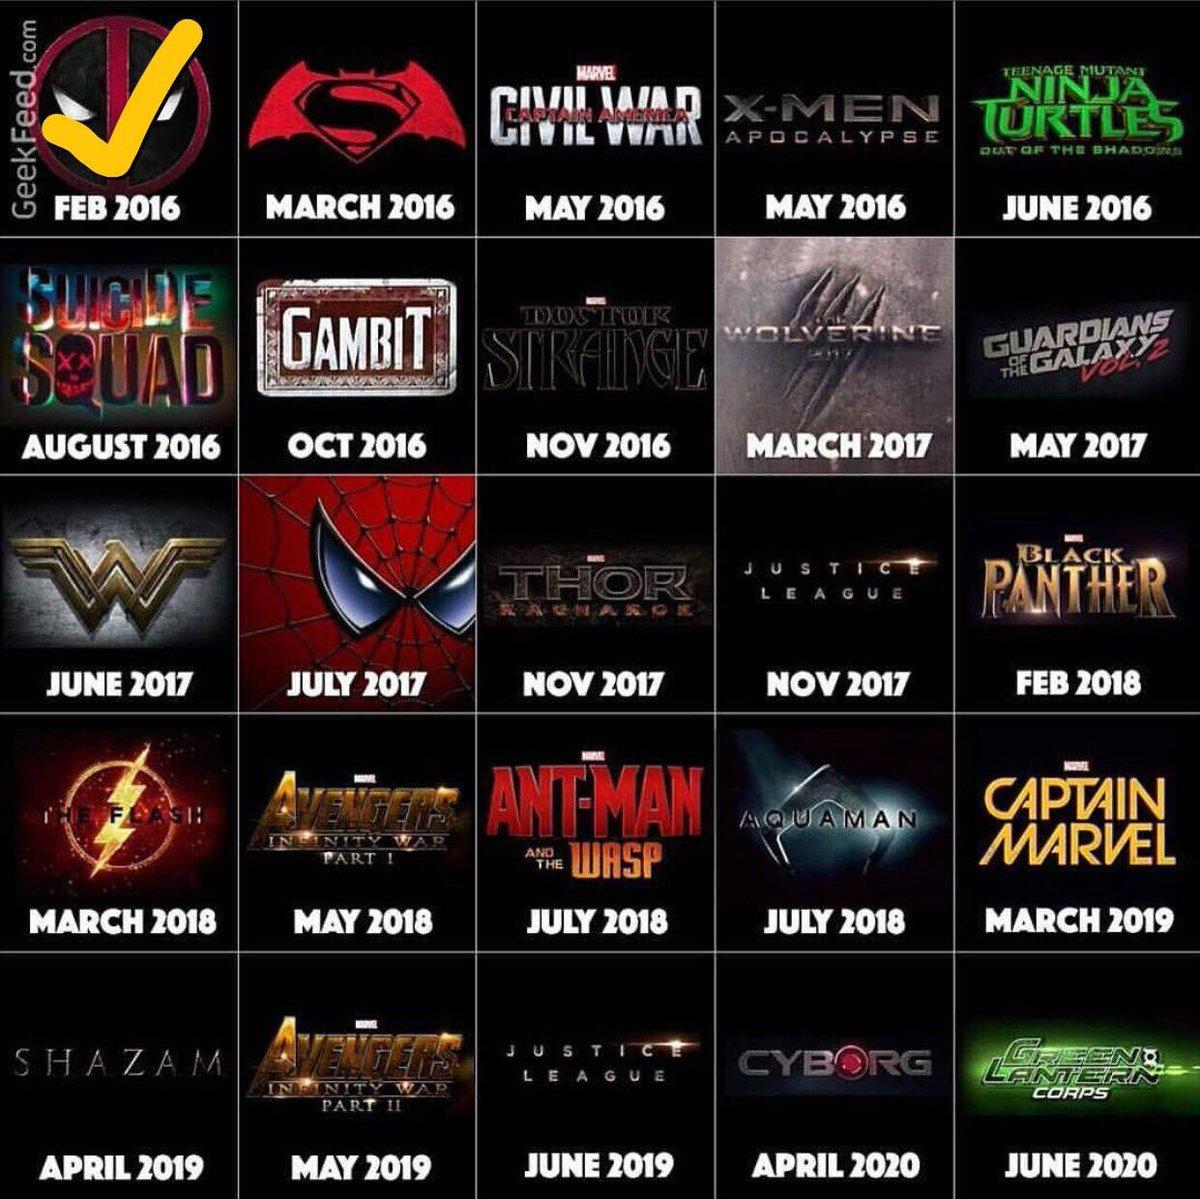 Mcu Libros Superhero Films Coming Soon Marvel Cinematic Universe